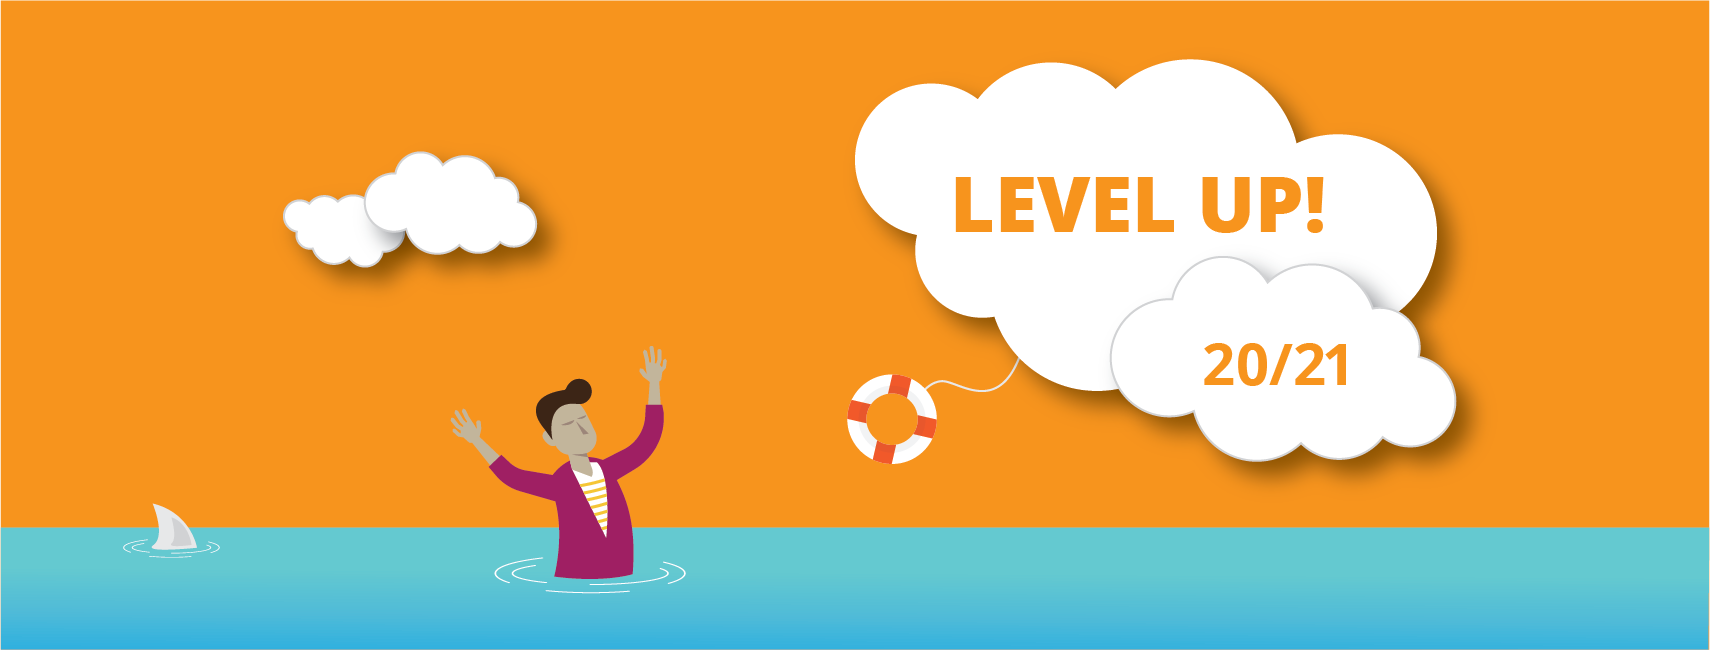 """Illustration of a person sinking in water with """"Level Up 20/21"""" in a cloud"""